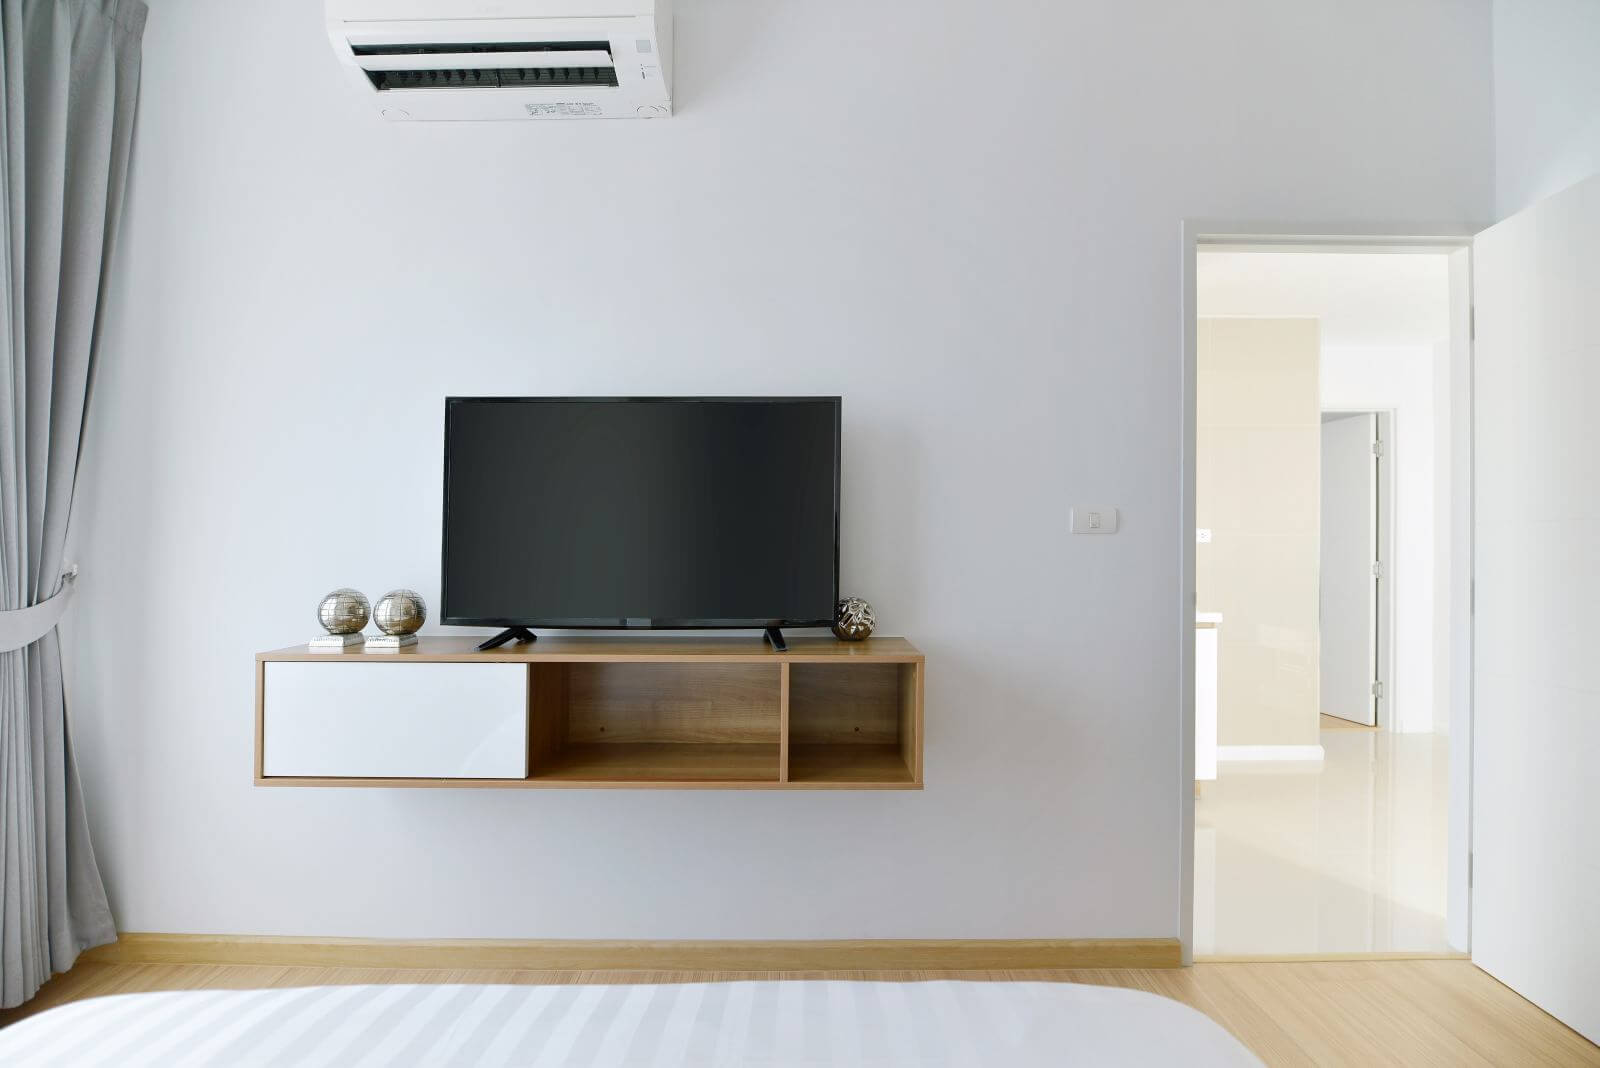 Modern Empty bedroom with led tv on white wall and wooden shelf